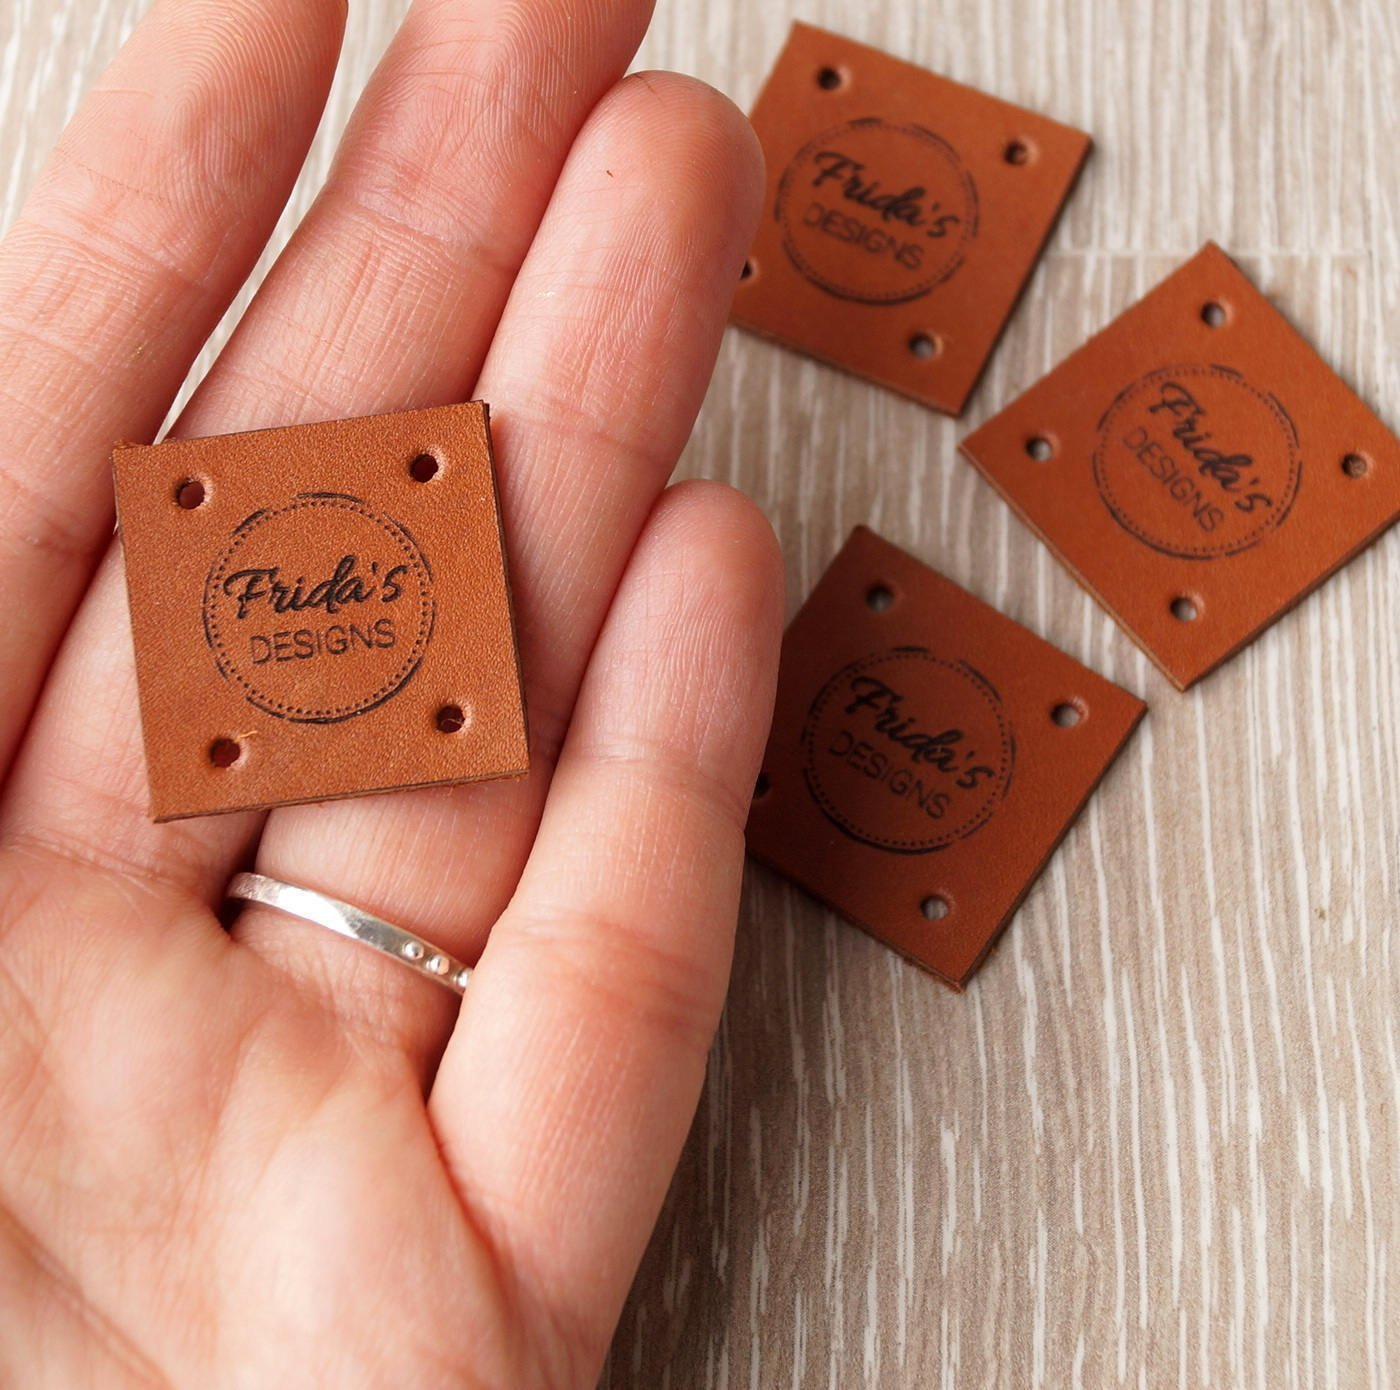 Leather knitting labels Handmade custom label tags care labels custom clothing labels set of 25 personalized leather labels